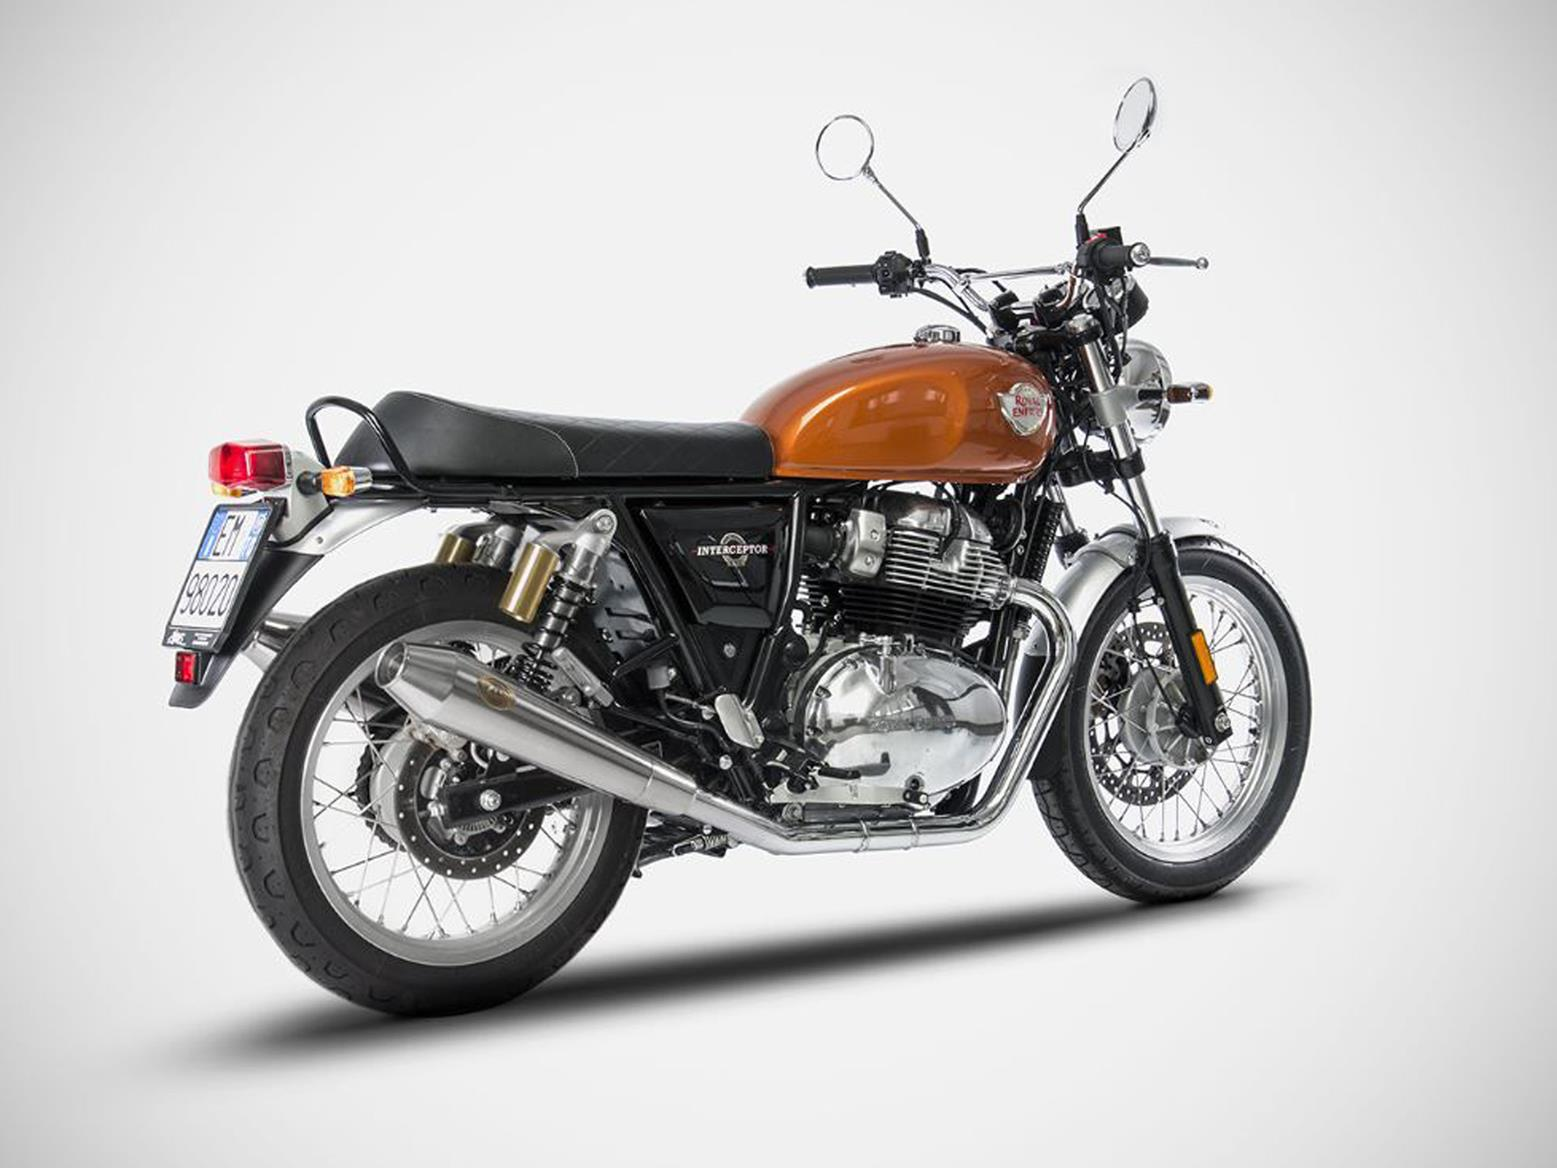 Royal Enfield Interceptor 650 with Zard pipes